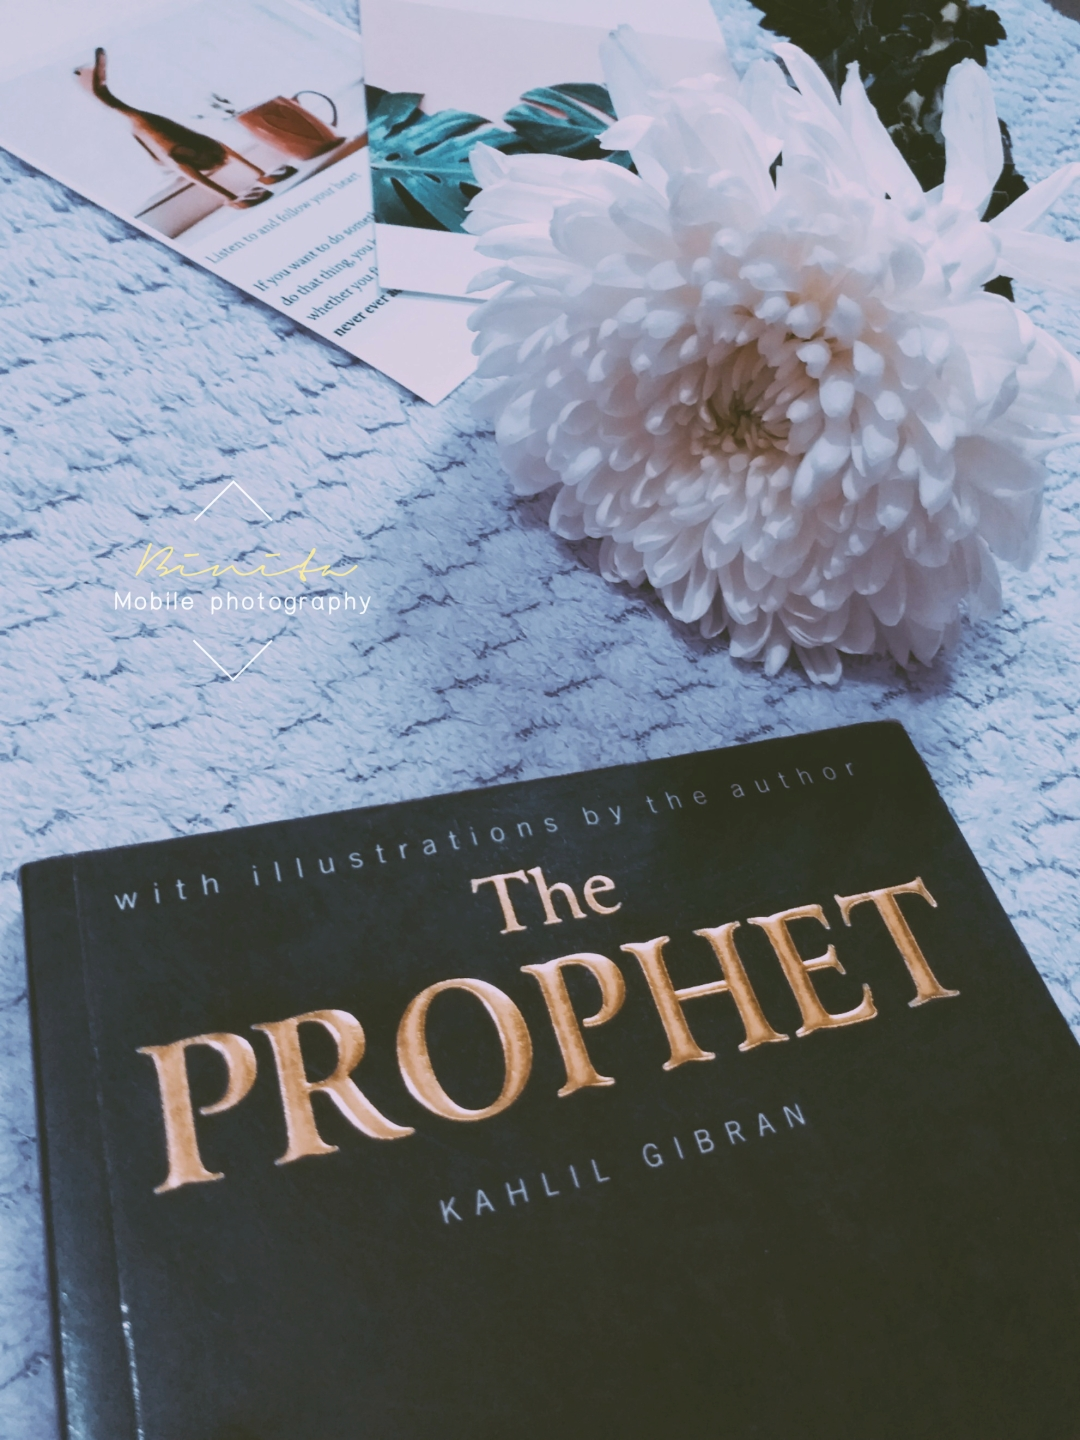 Book, the prophet, Khalil Gibran